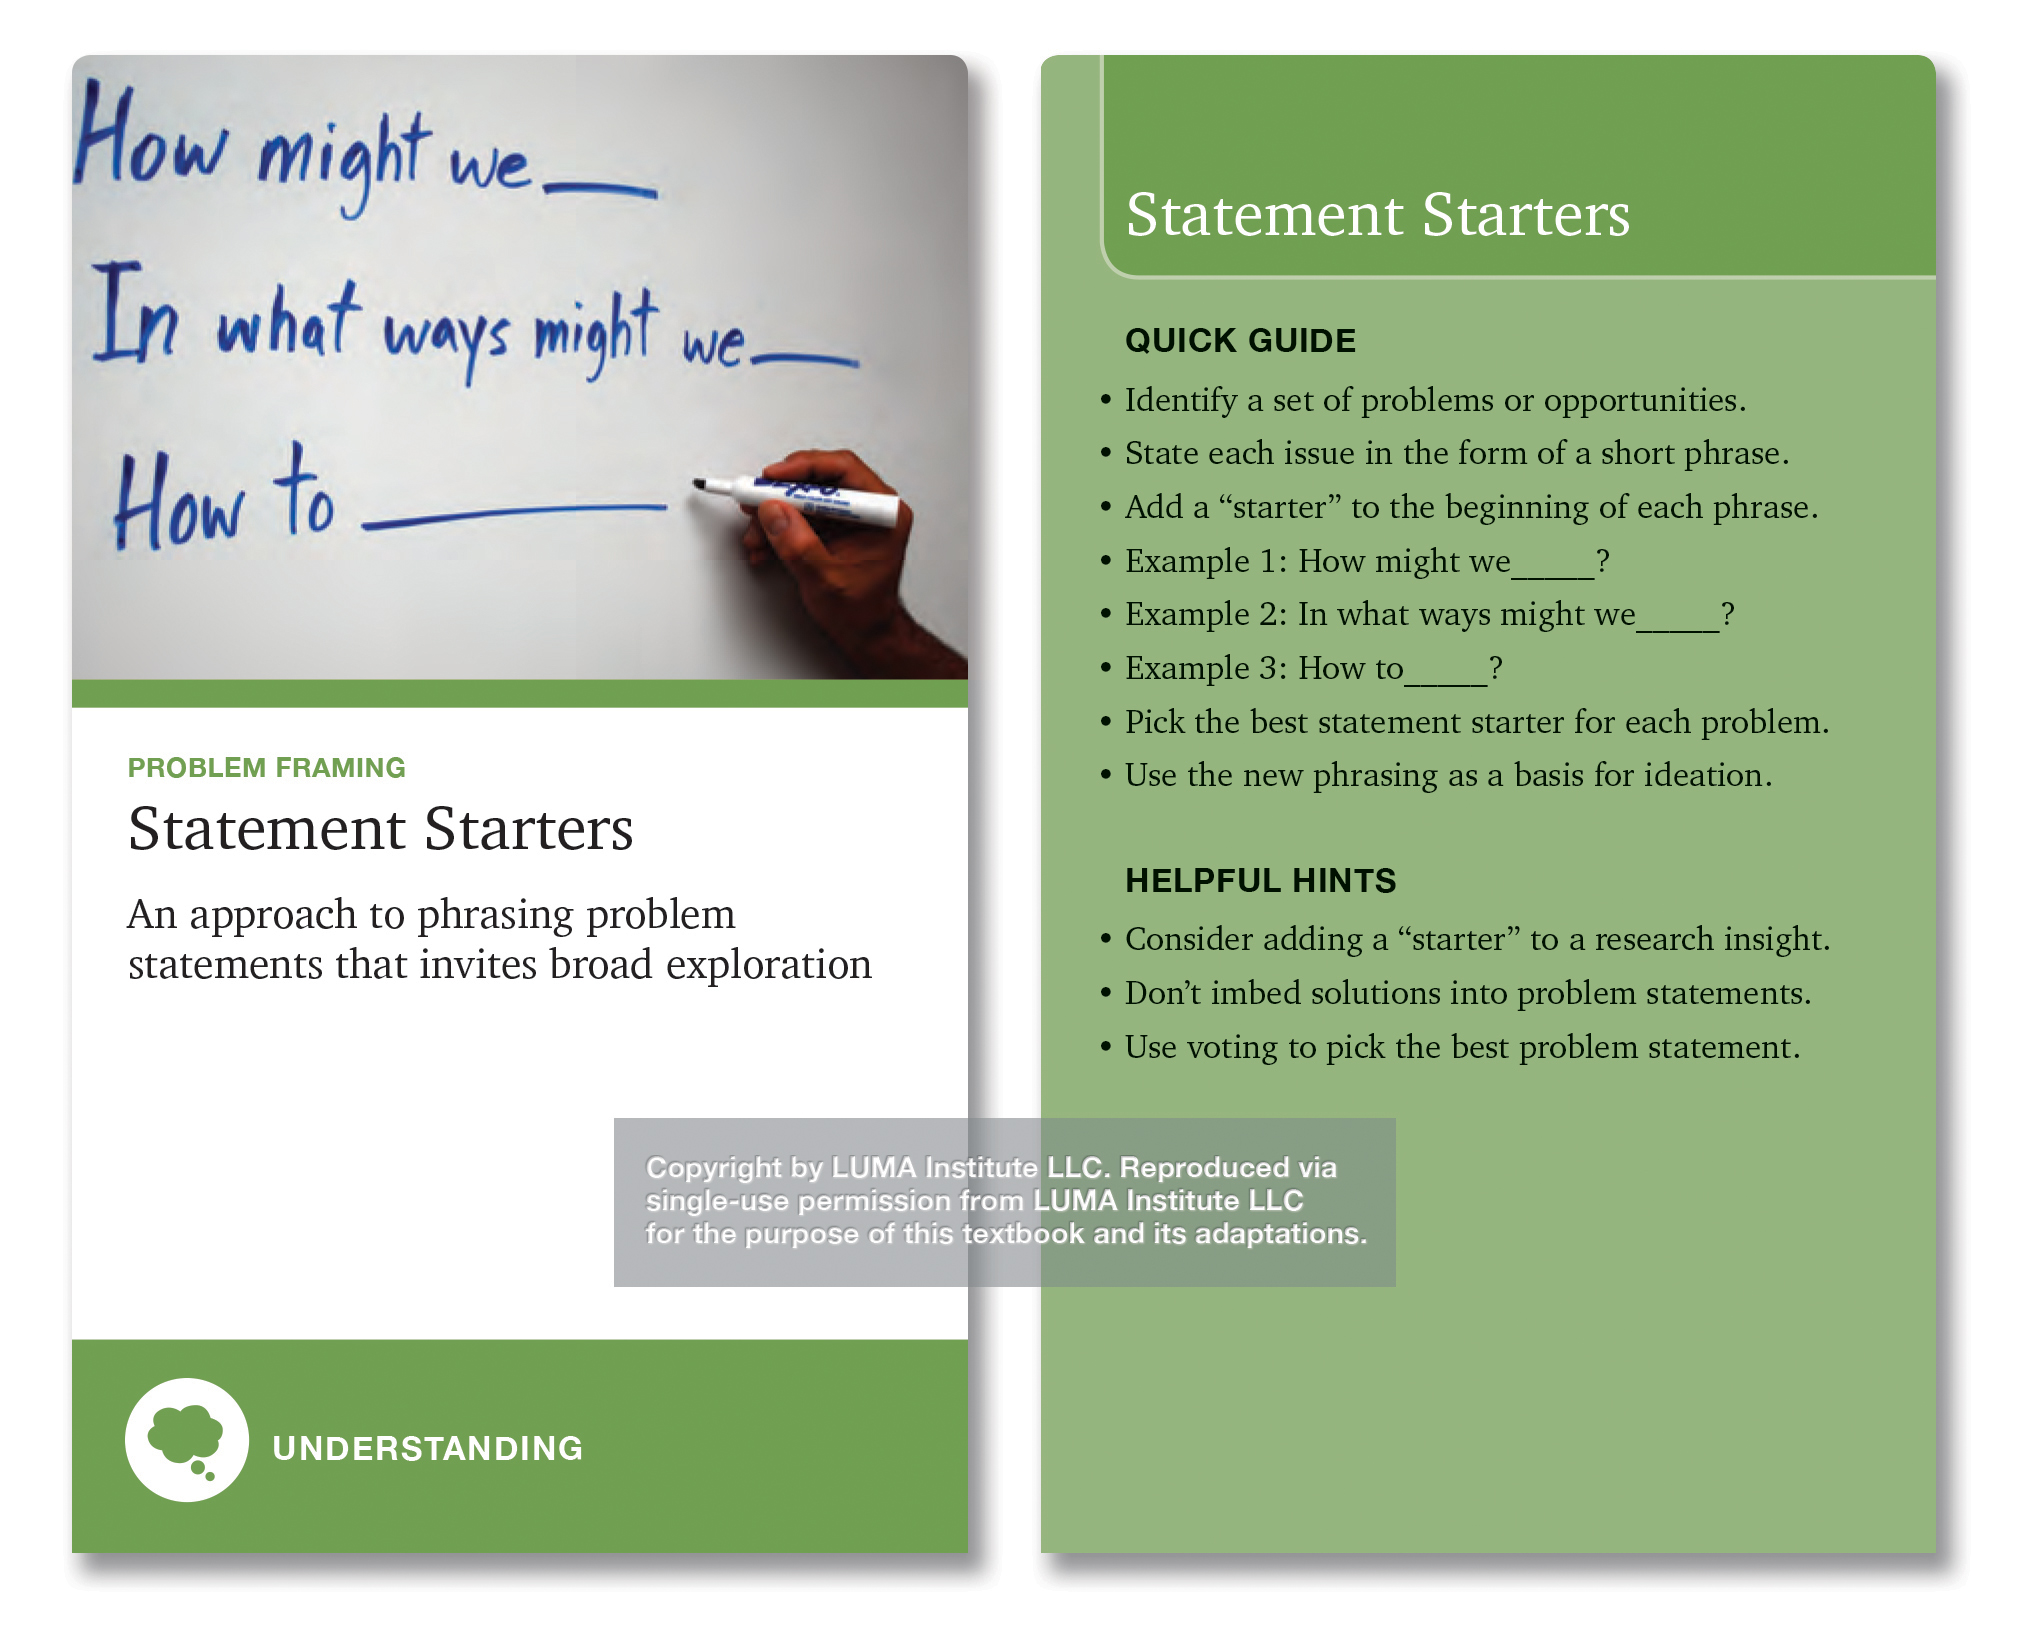 "Depicted, Statement Starters, ""an approach to phrasing problem statements that invites broad exploration."" The quick guide has bullets including ""Identify a set of problems or opportunities. State each issue. Add a ""starter to the beginning of each."" Example: ""How might we…"" Pick the best starter for the problem. Use the new phrasing as the starting point for ideation."